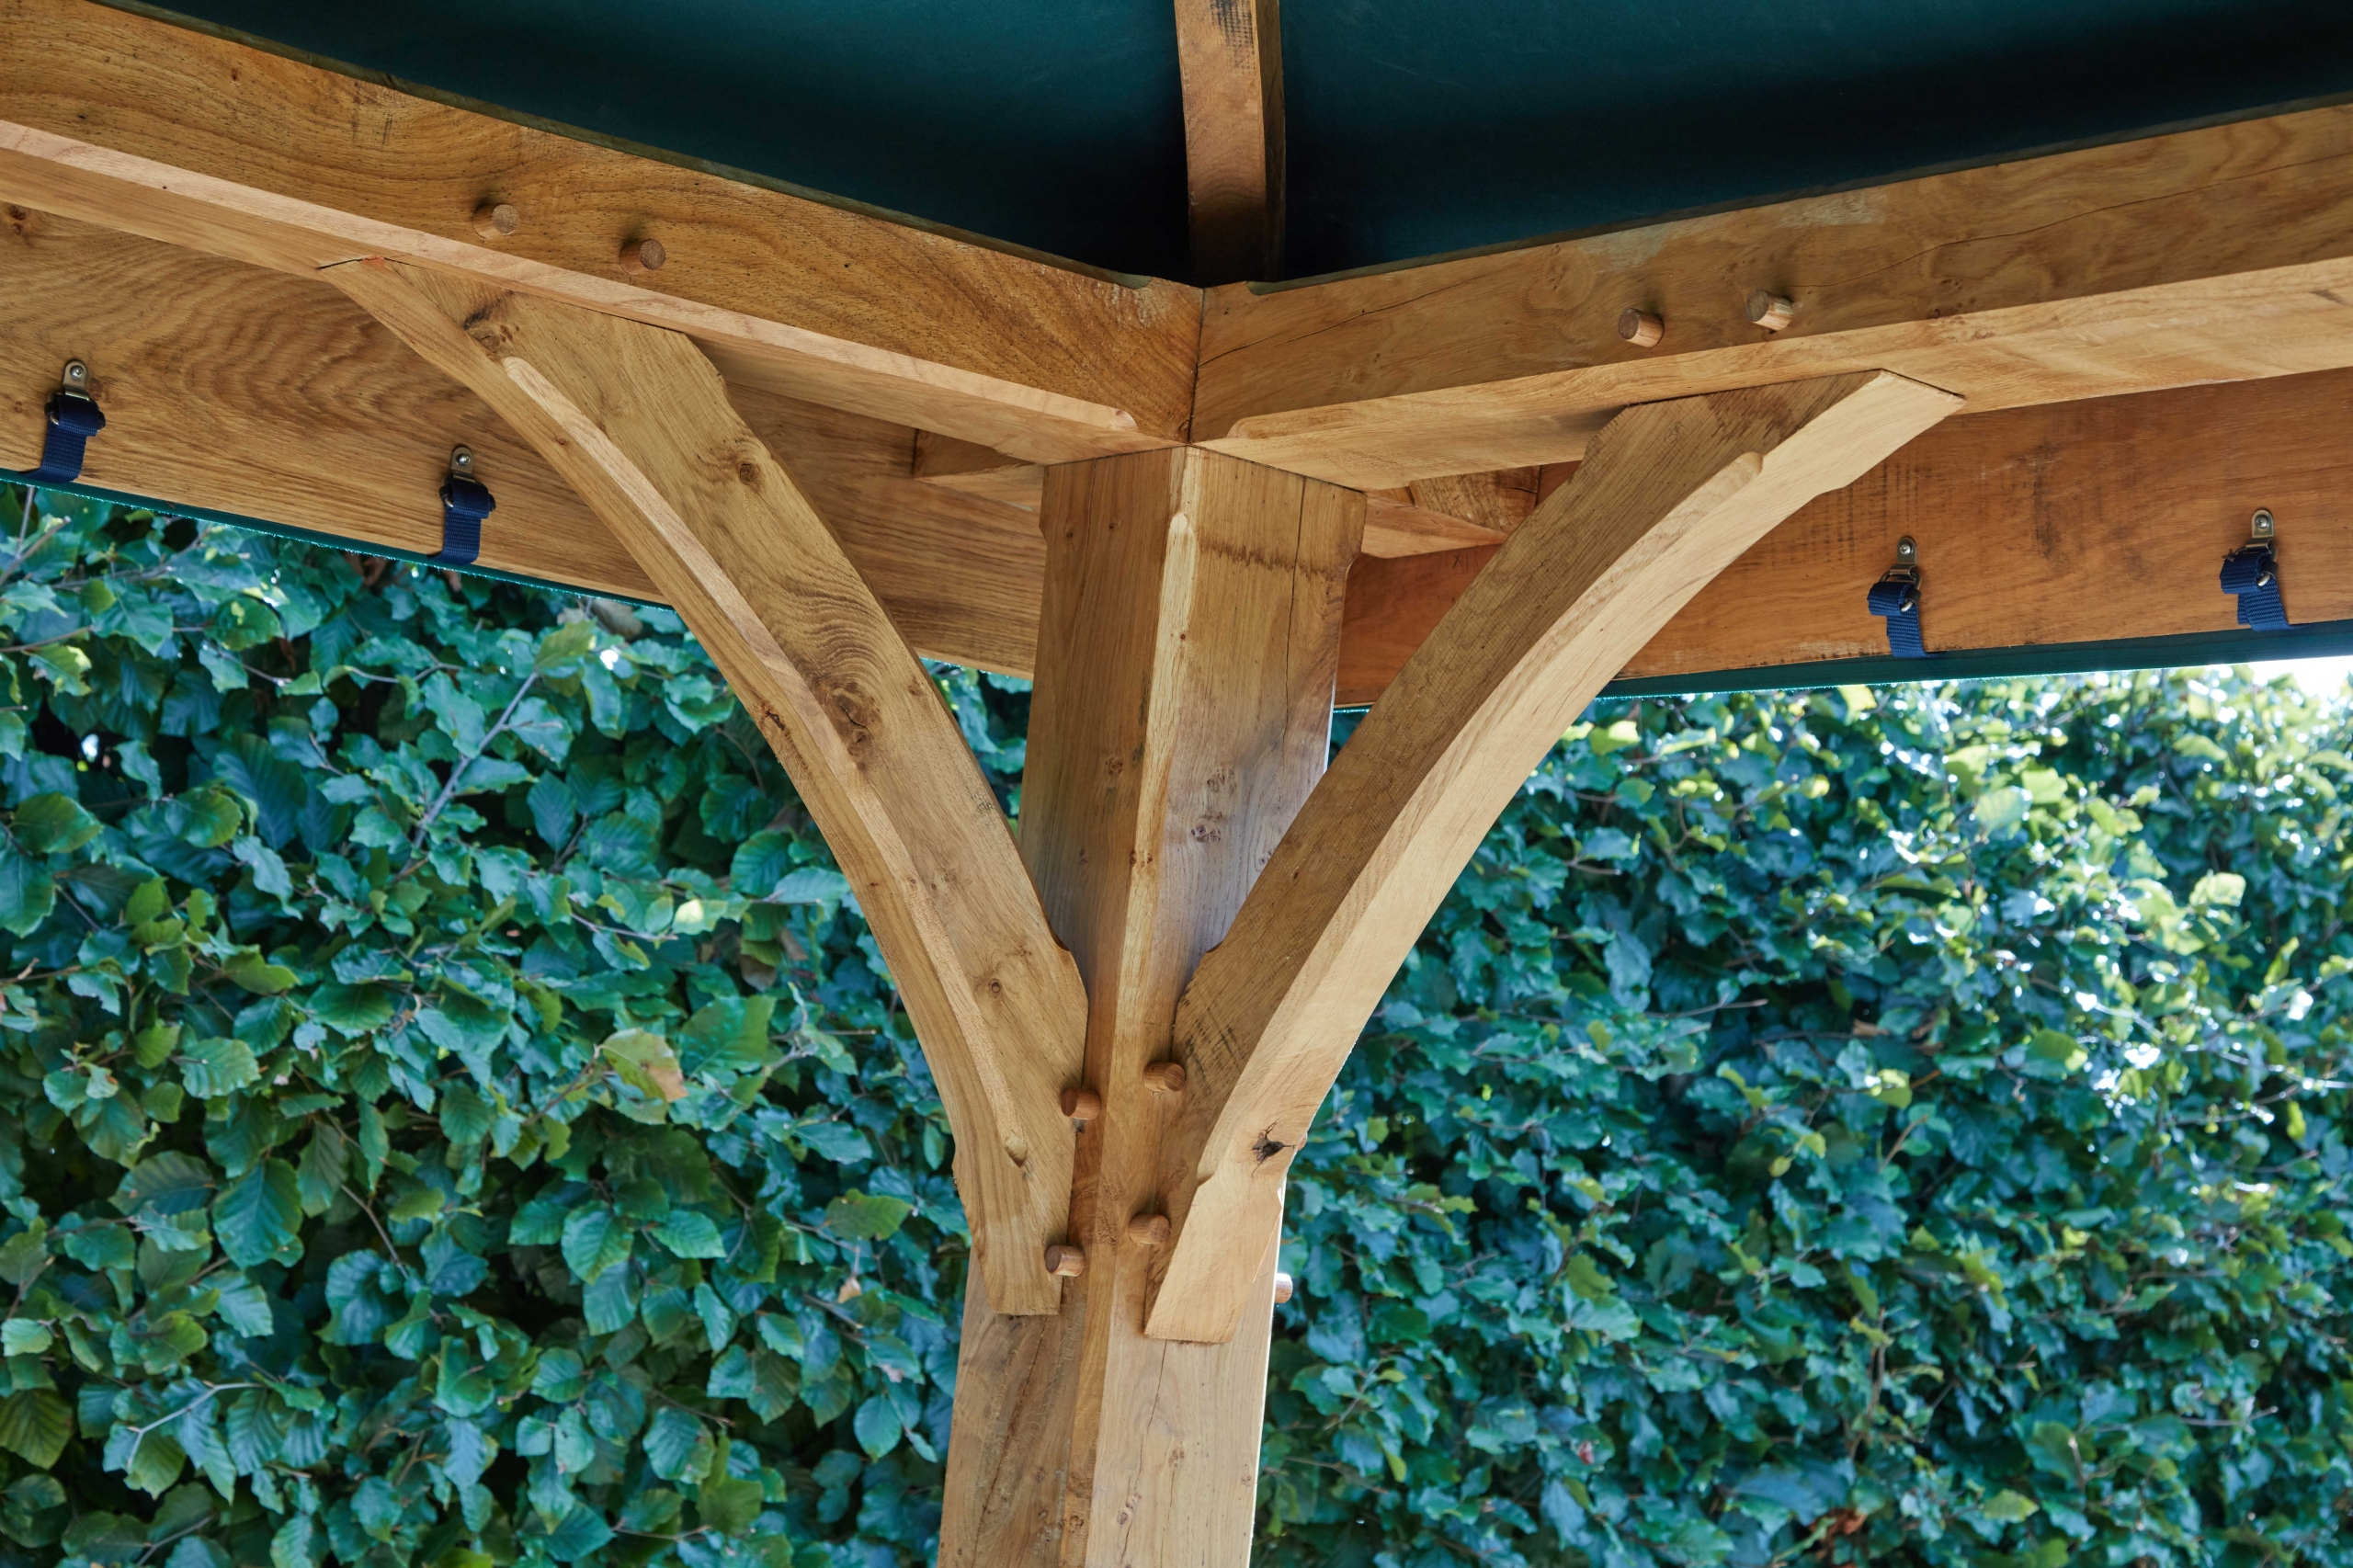 Interior roof of oak framed gazebo with pegged joints